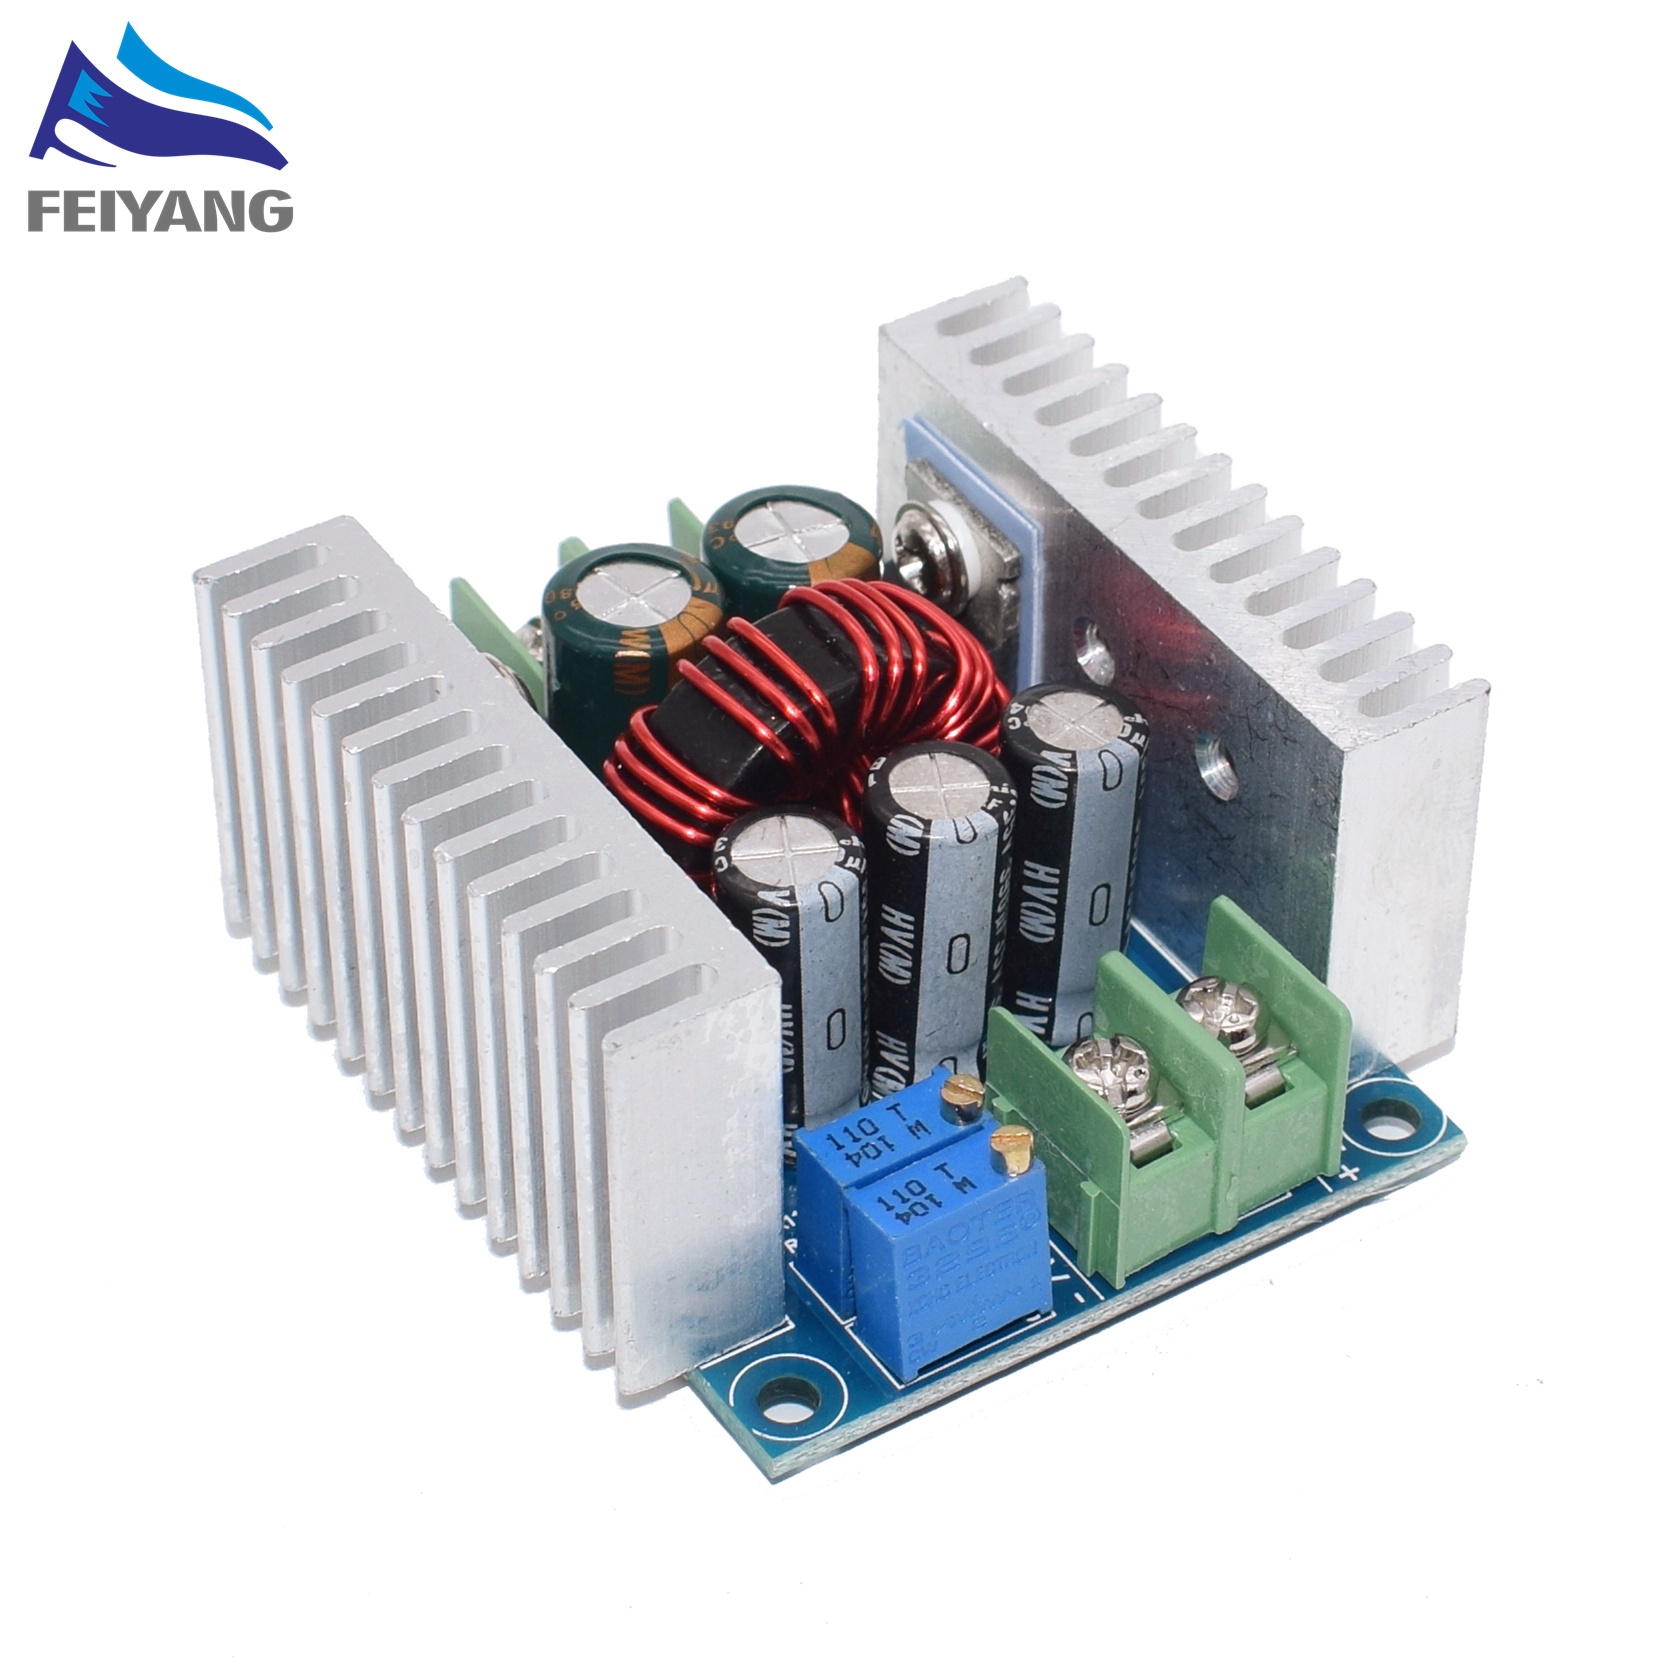 300W 20A DC-DC Buck Converter Step Down Module Constant Current LED Driver Power Step Down Voltage Module Electrolytic Capacitor300W 20A DC-DC Buck Converter Step Down Module Constant Current LED Driver Power Step Down Voltage Module Electrolytic Capacitor